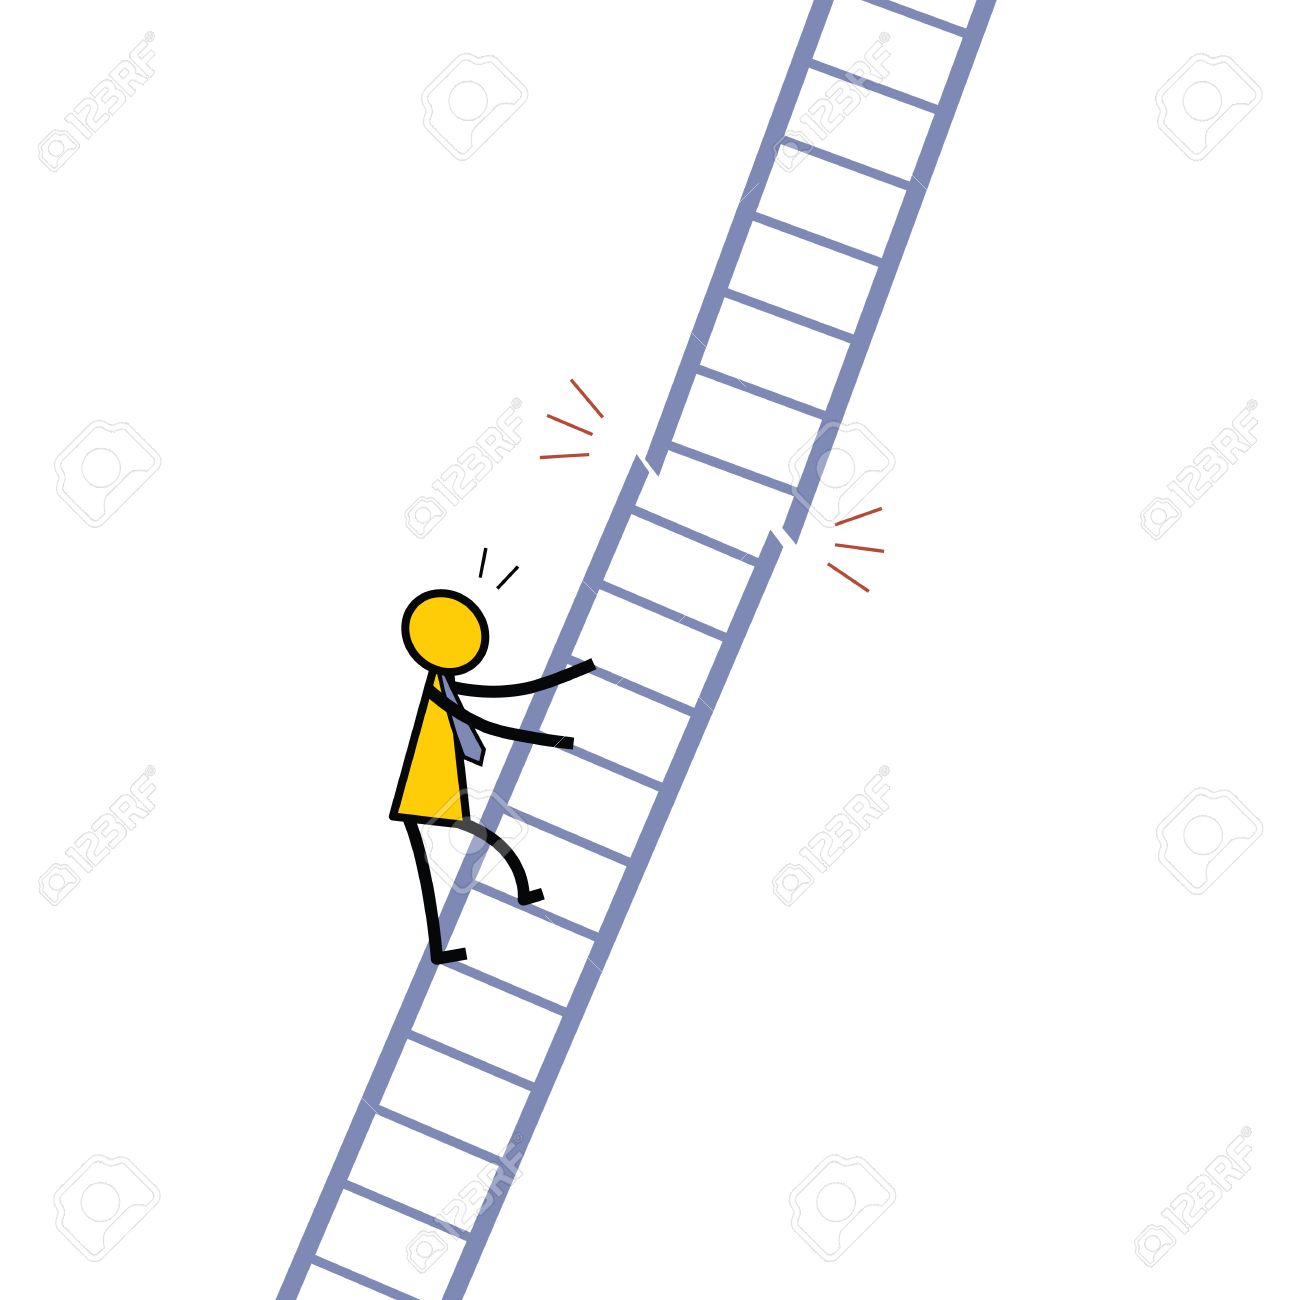 businessman climbing up the ladder and out the ladder businessman climbing up the ladder and out the ladder immediately being broken metaphor to